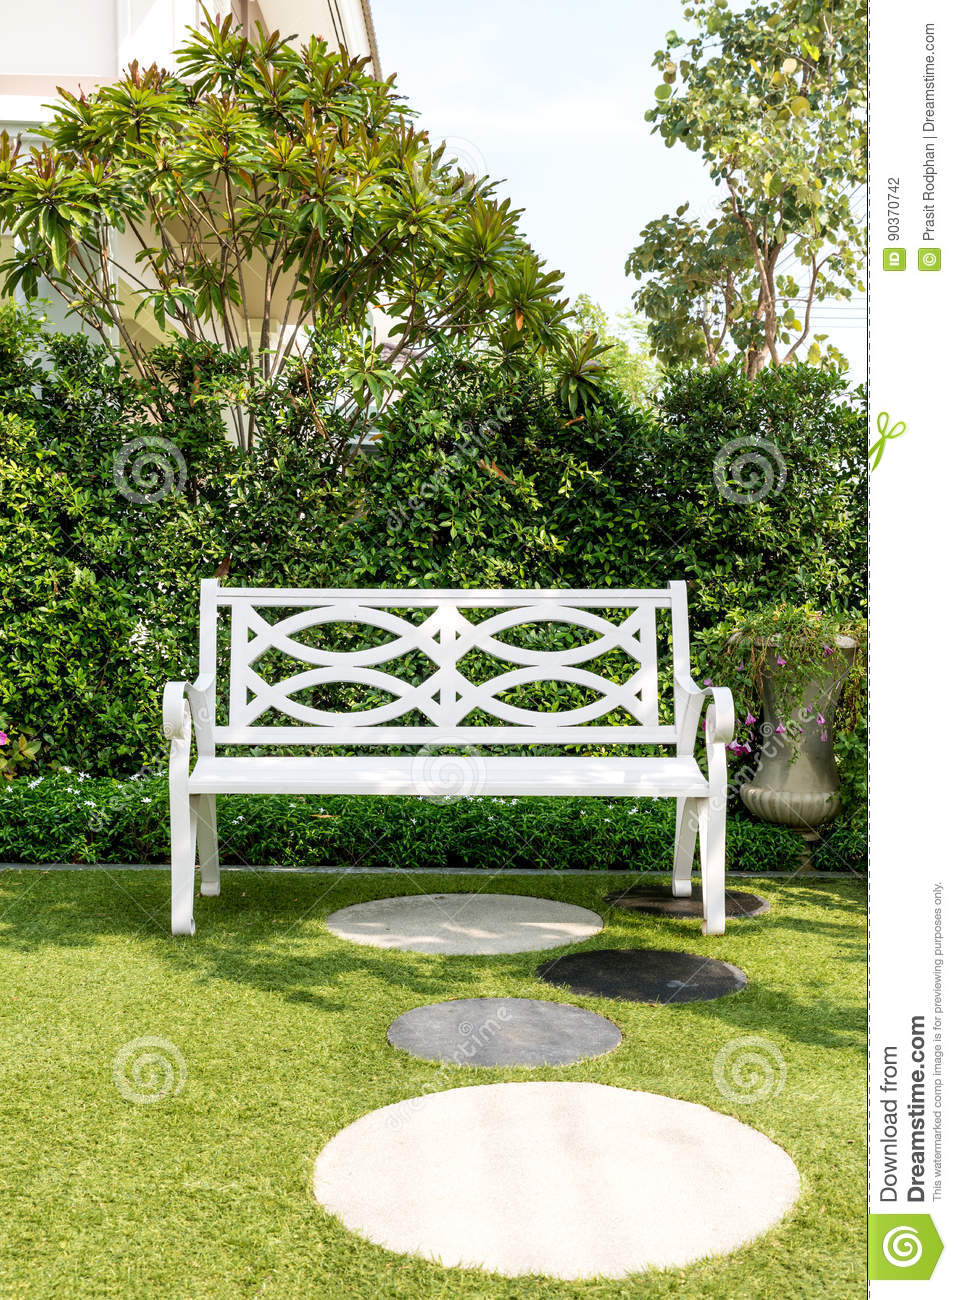 White Wood Bench Chair With Bush Background In Garden At